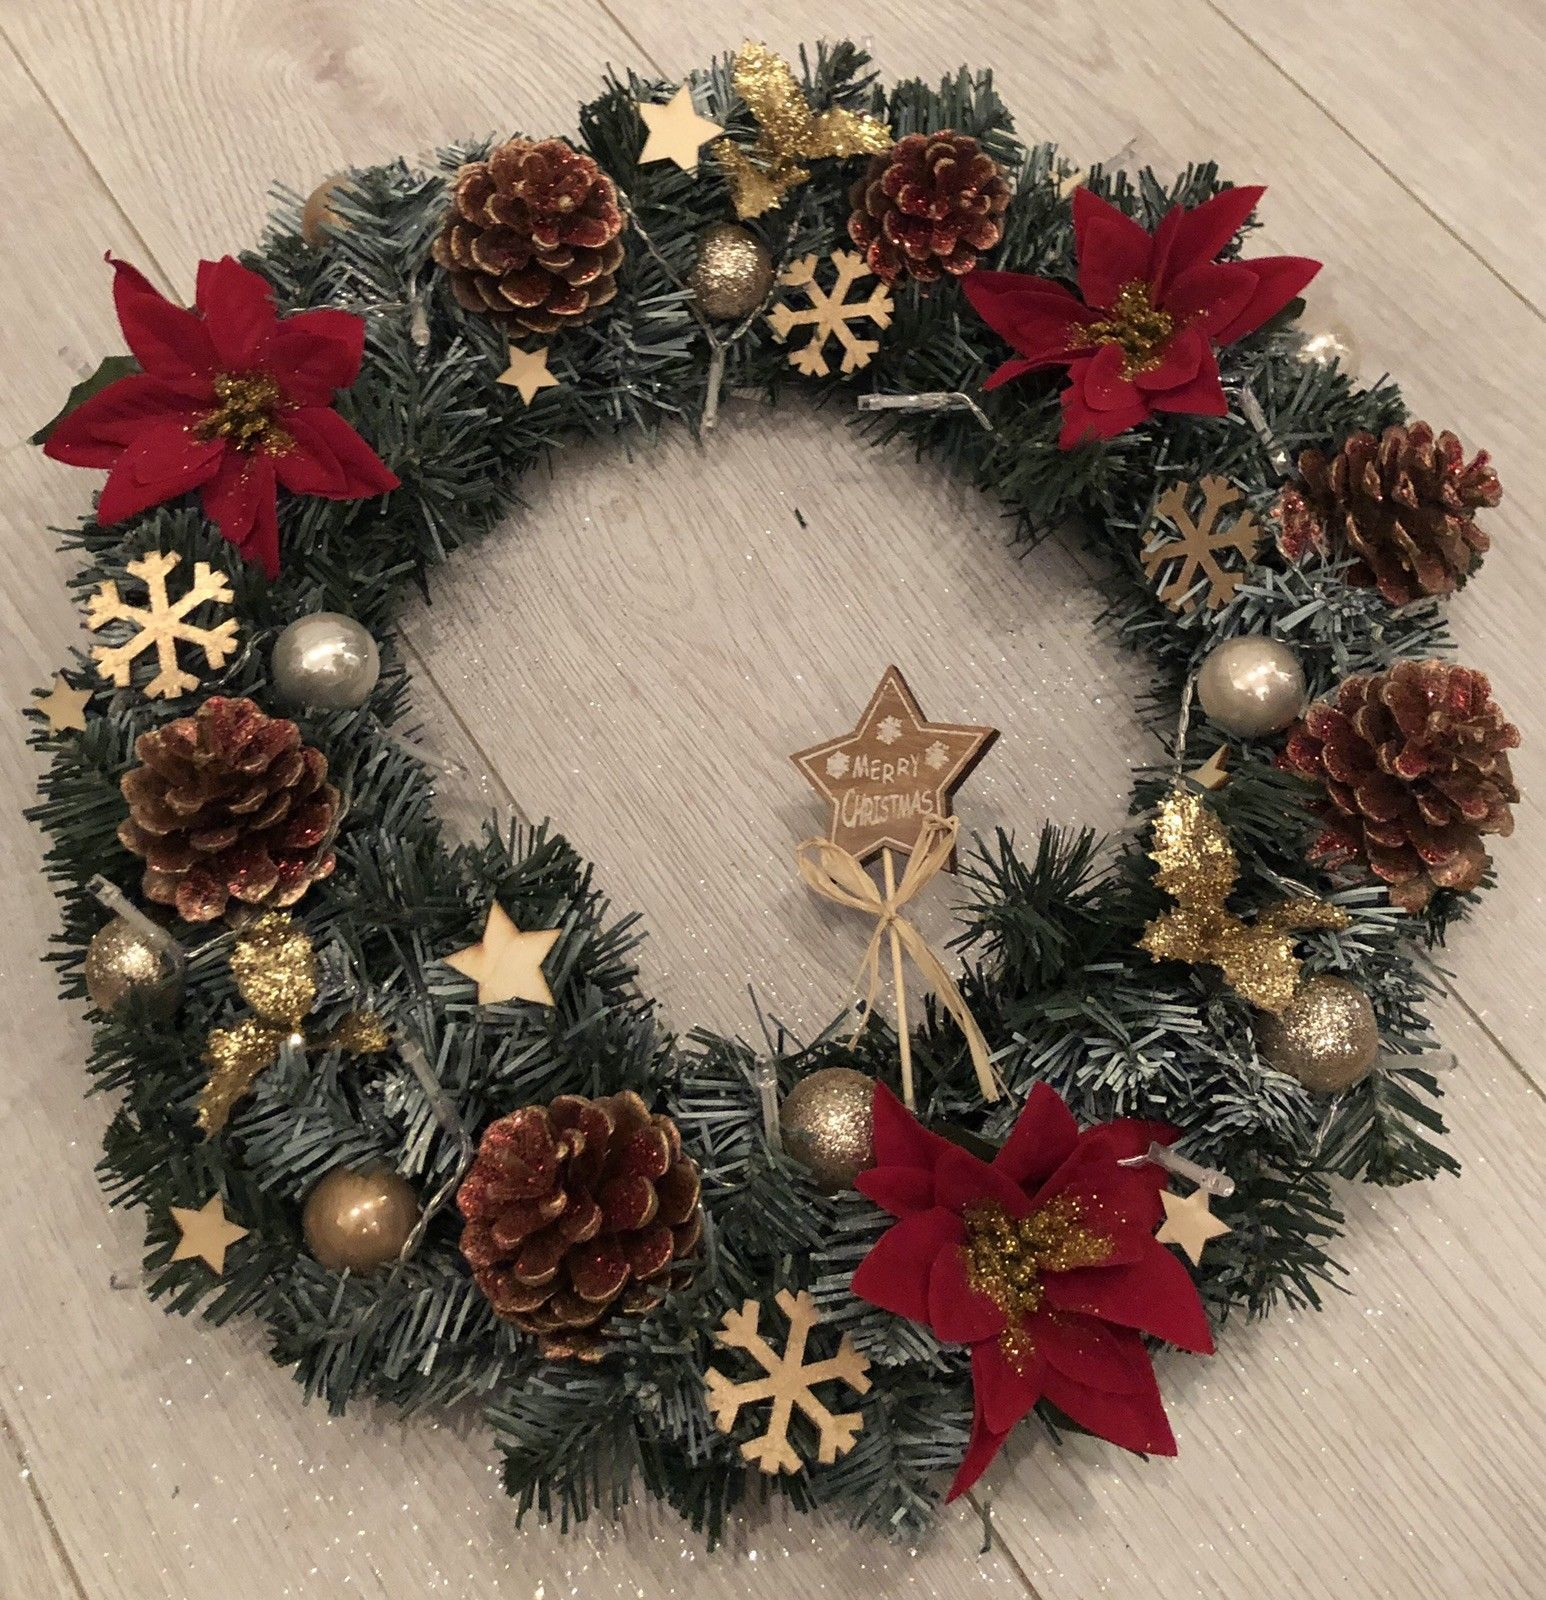 red-gold-christmas-wreath-fairy-lights-front-door-wall-decoration-poinsettia -1354-p.jpg